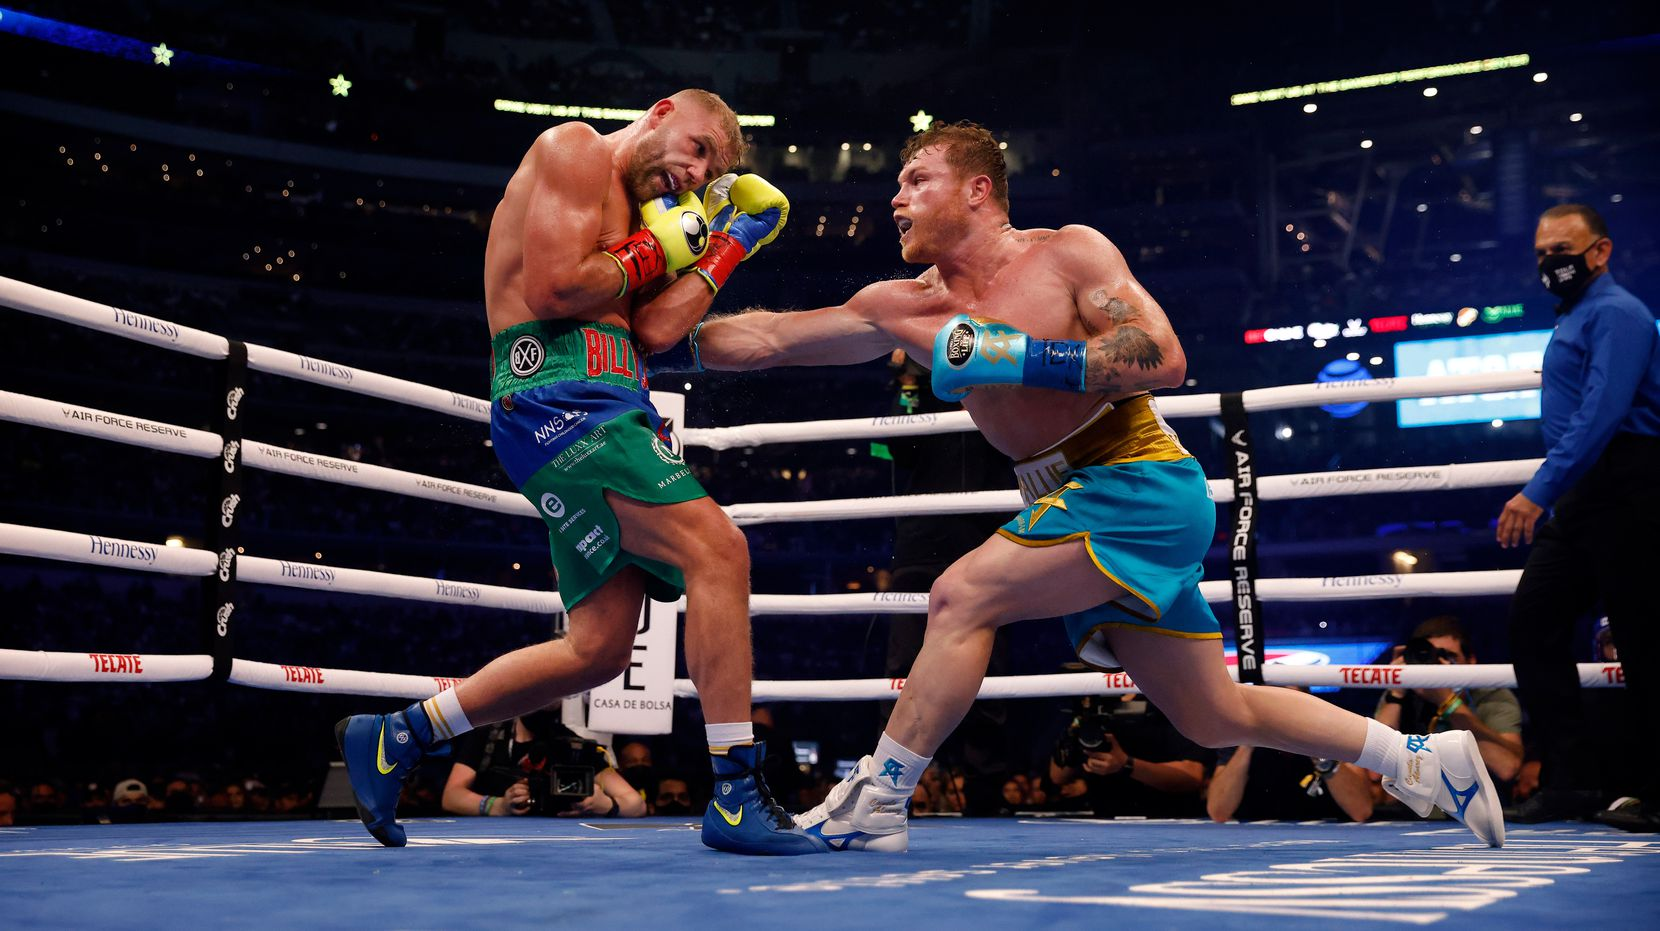 Boxer Canelo Alvarez (right) lands a punch on Billy Joe Saunders during their super middleweight title fight at AT&T Stadium in Arlington, Saturday, May 8, 2021. Saunders couldn't go on in the ninth round because he sustained an eye injury and could not see. (Tom Fox/The Dallas Morning News)